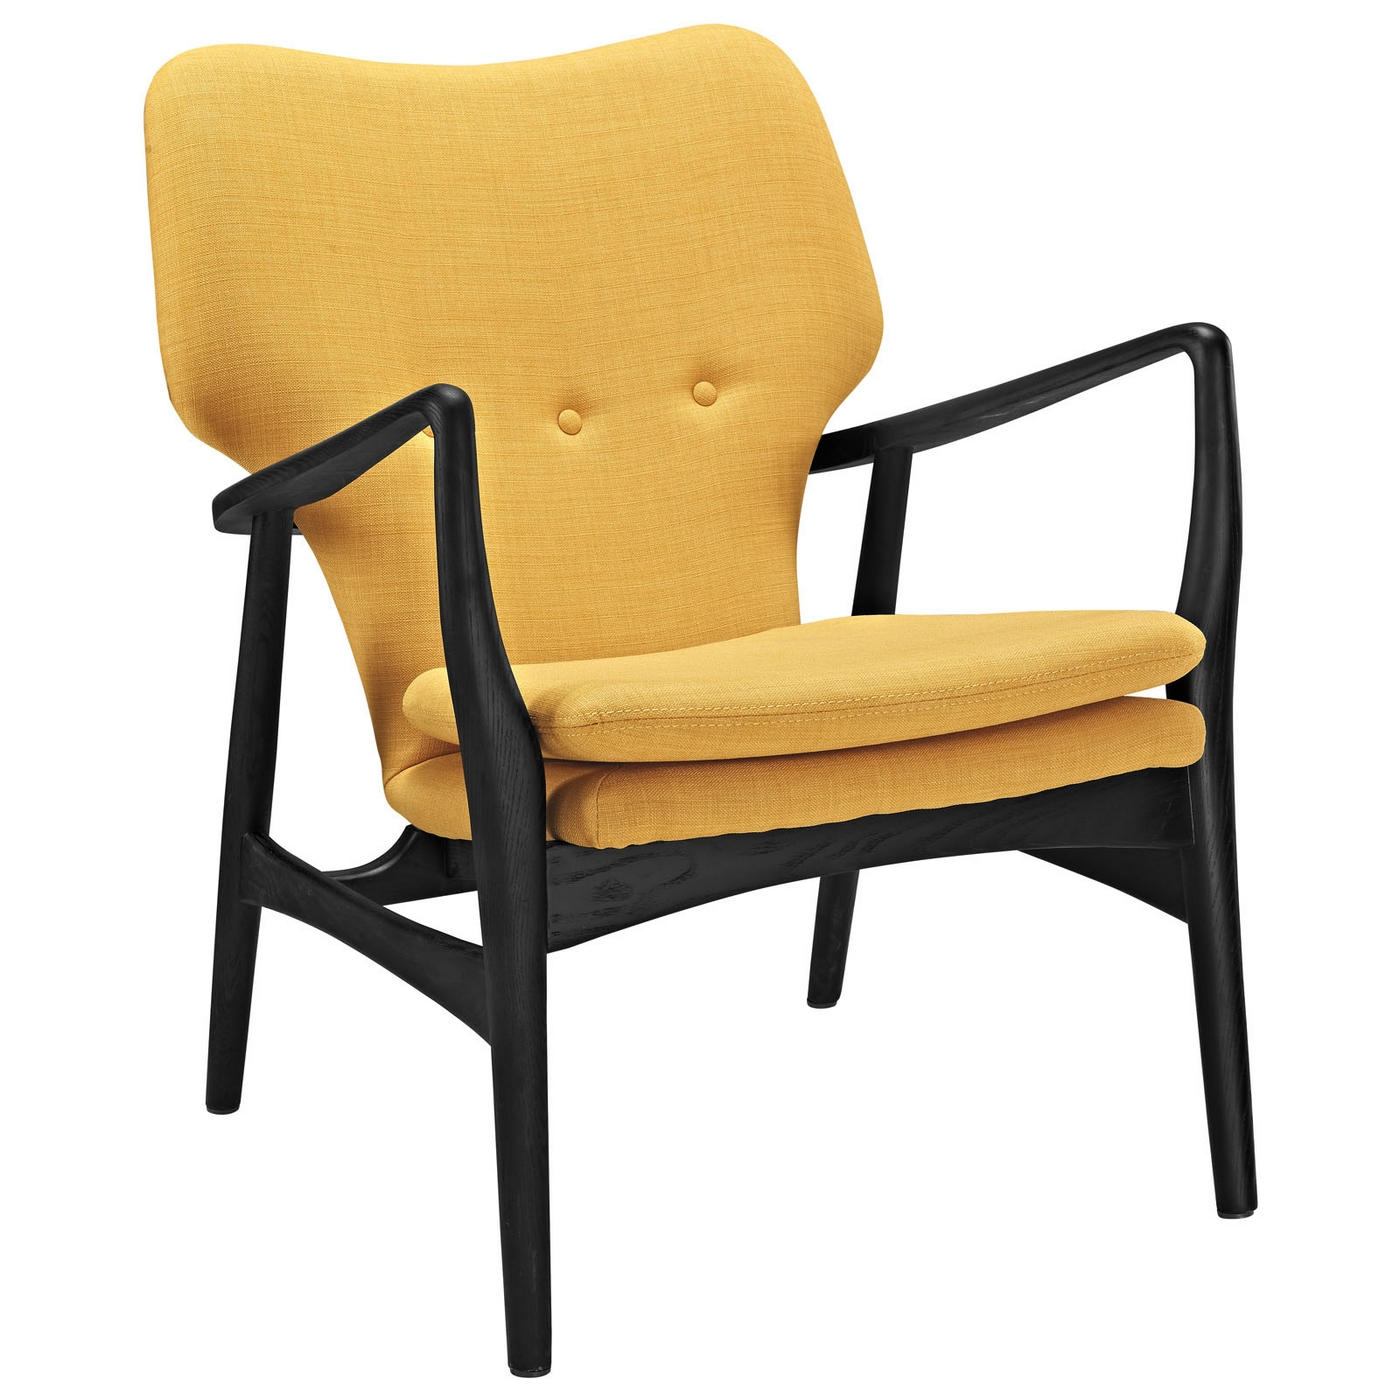 yellow upholstered accent chair baby 1 year old heed modern lounge with button accents